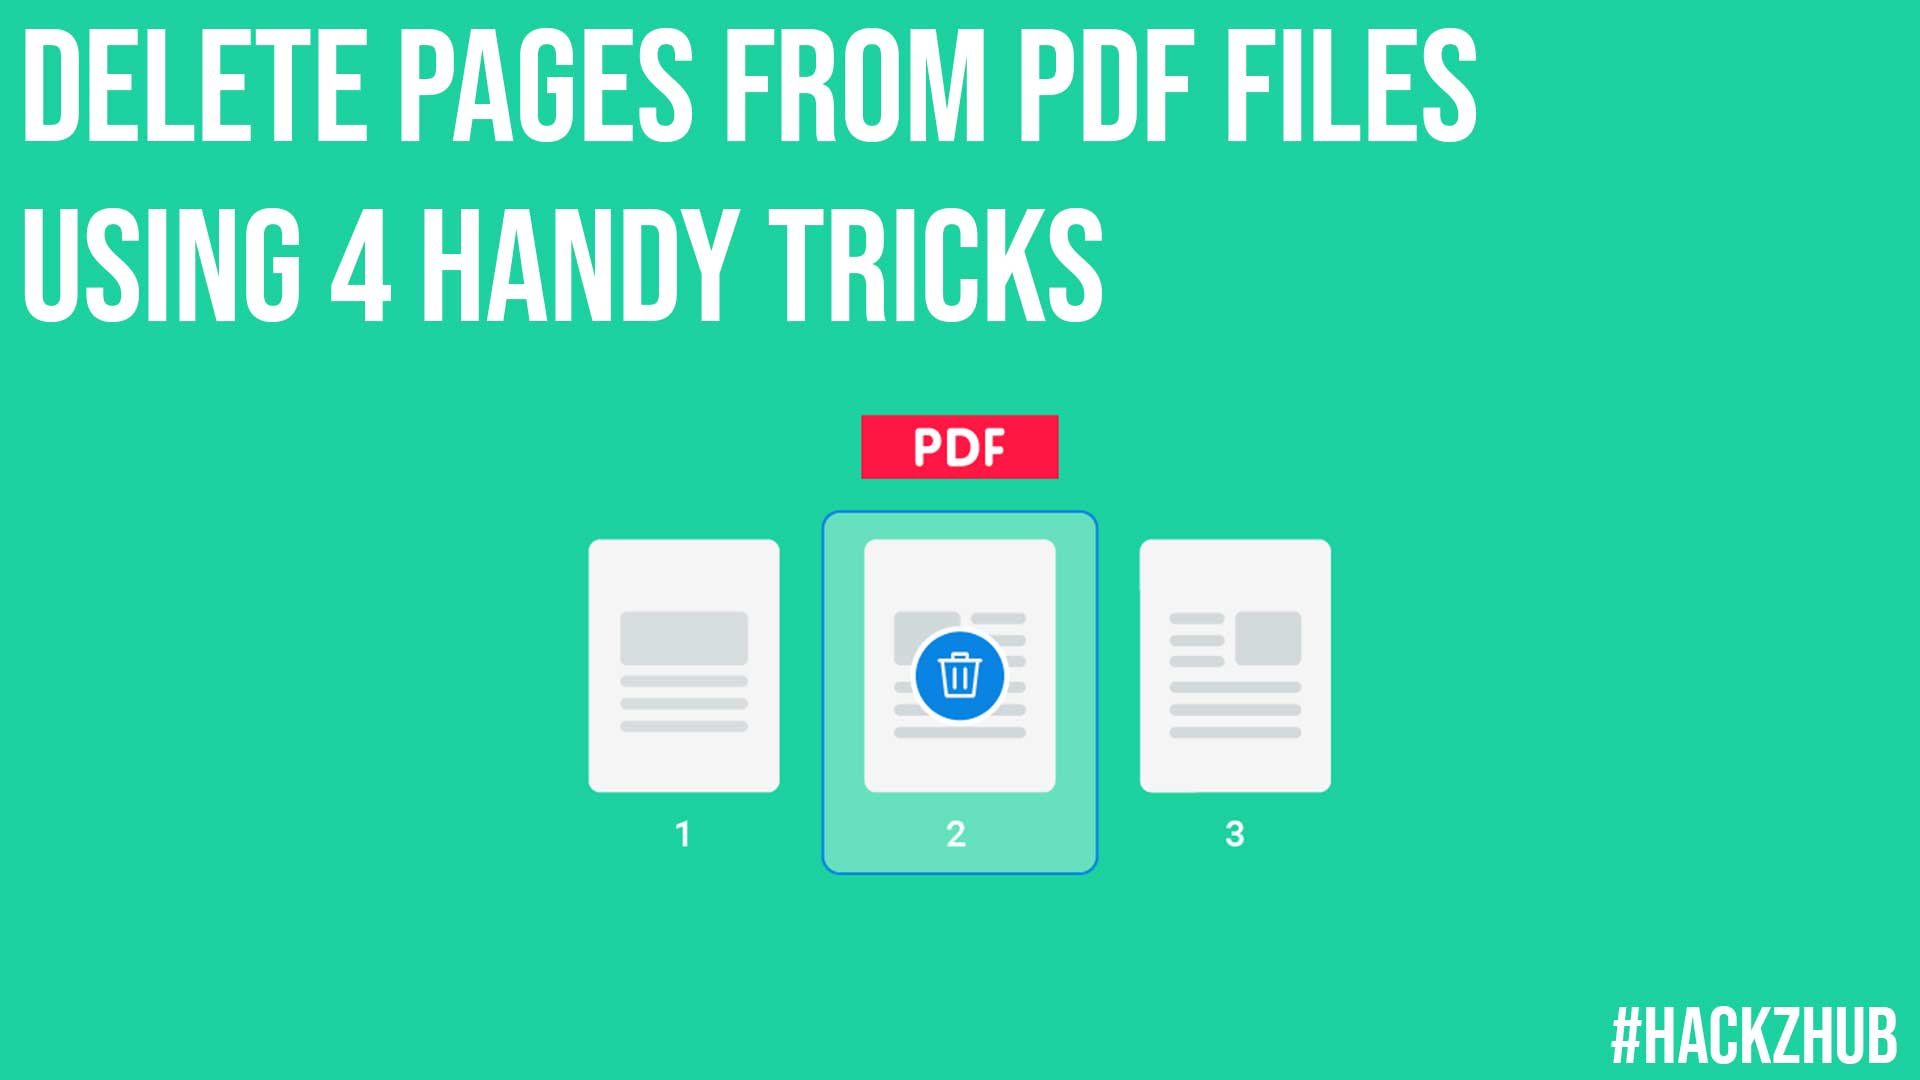 Delete Pages From PDF Files Using 4 Handy Tricks